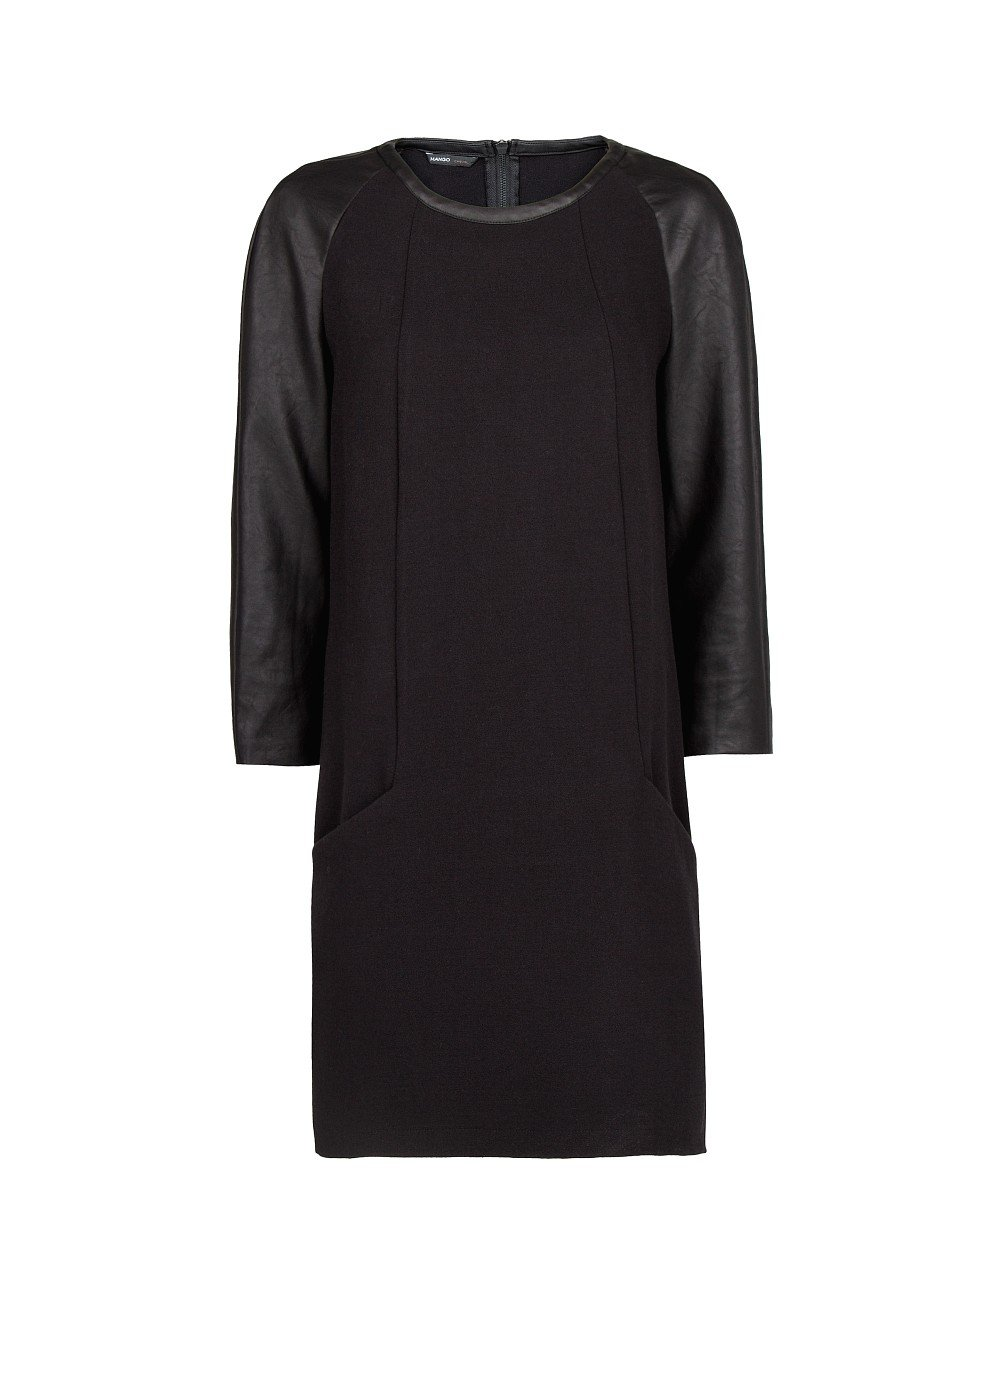 Mango Women's Contrast Sleeve Shift Dress